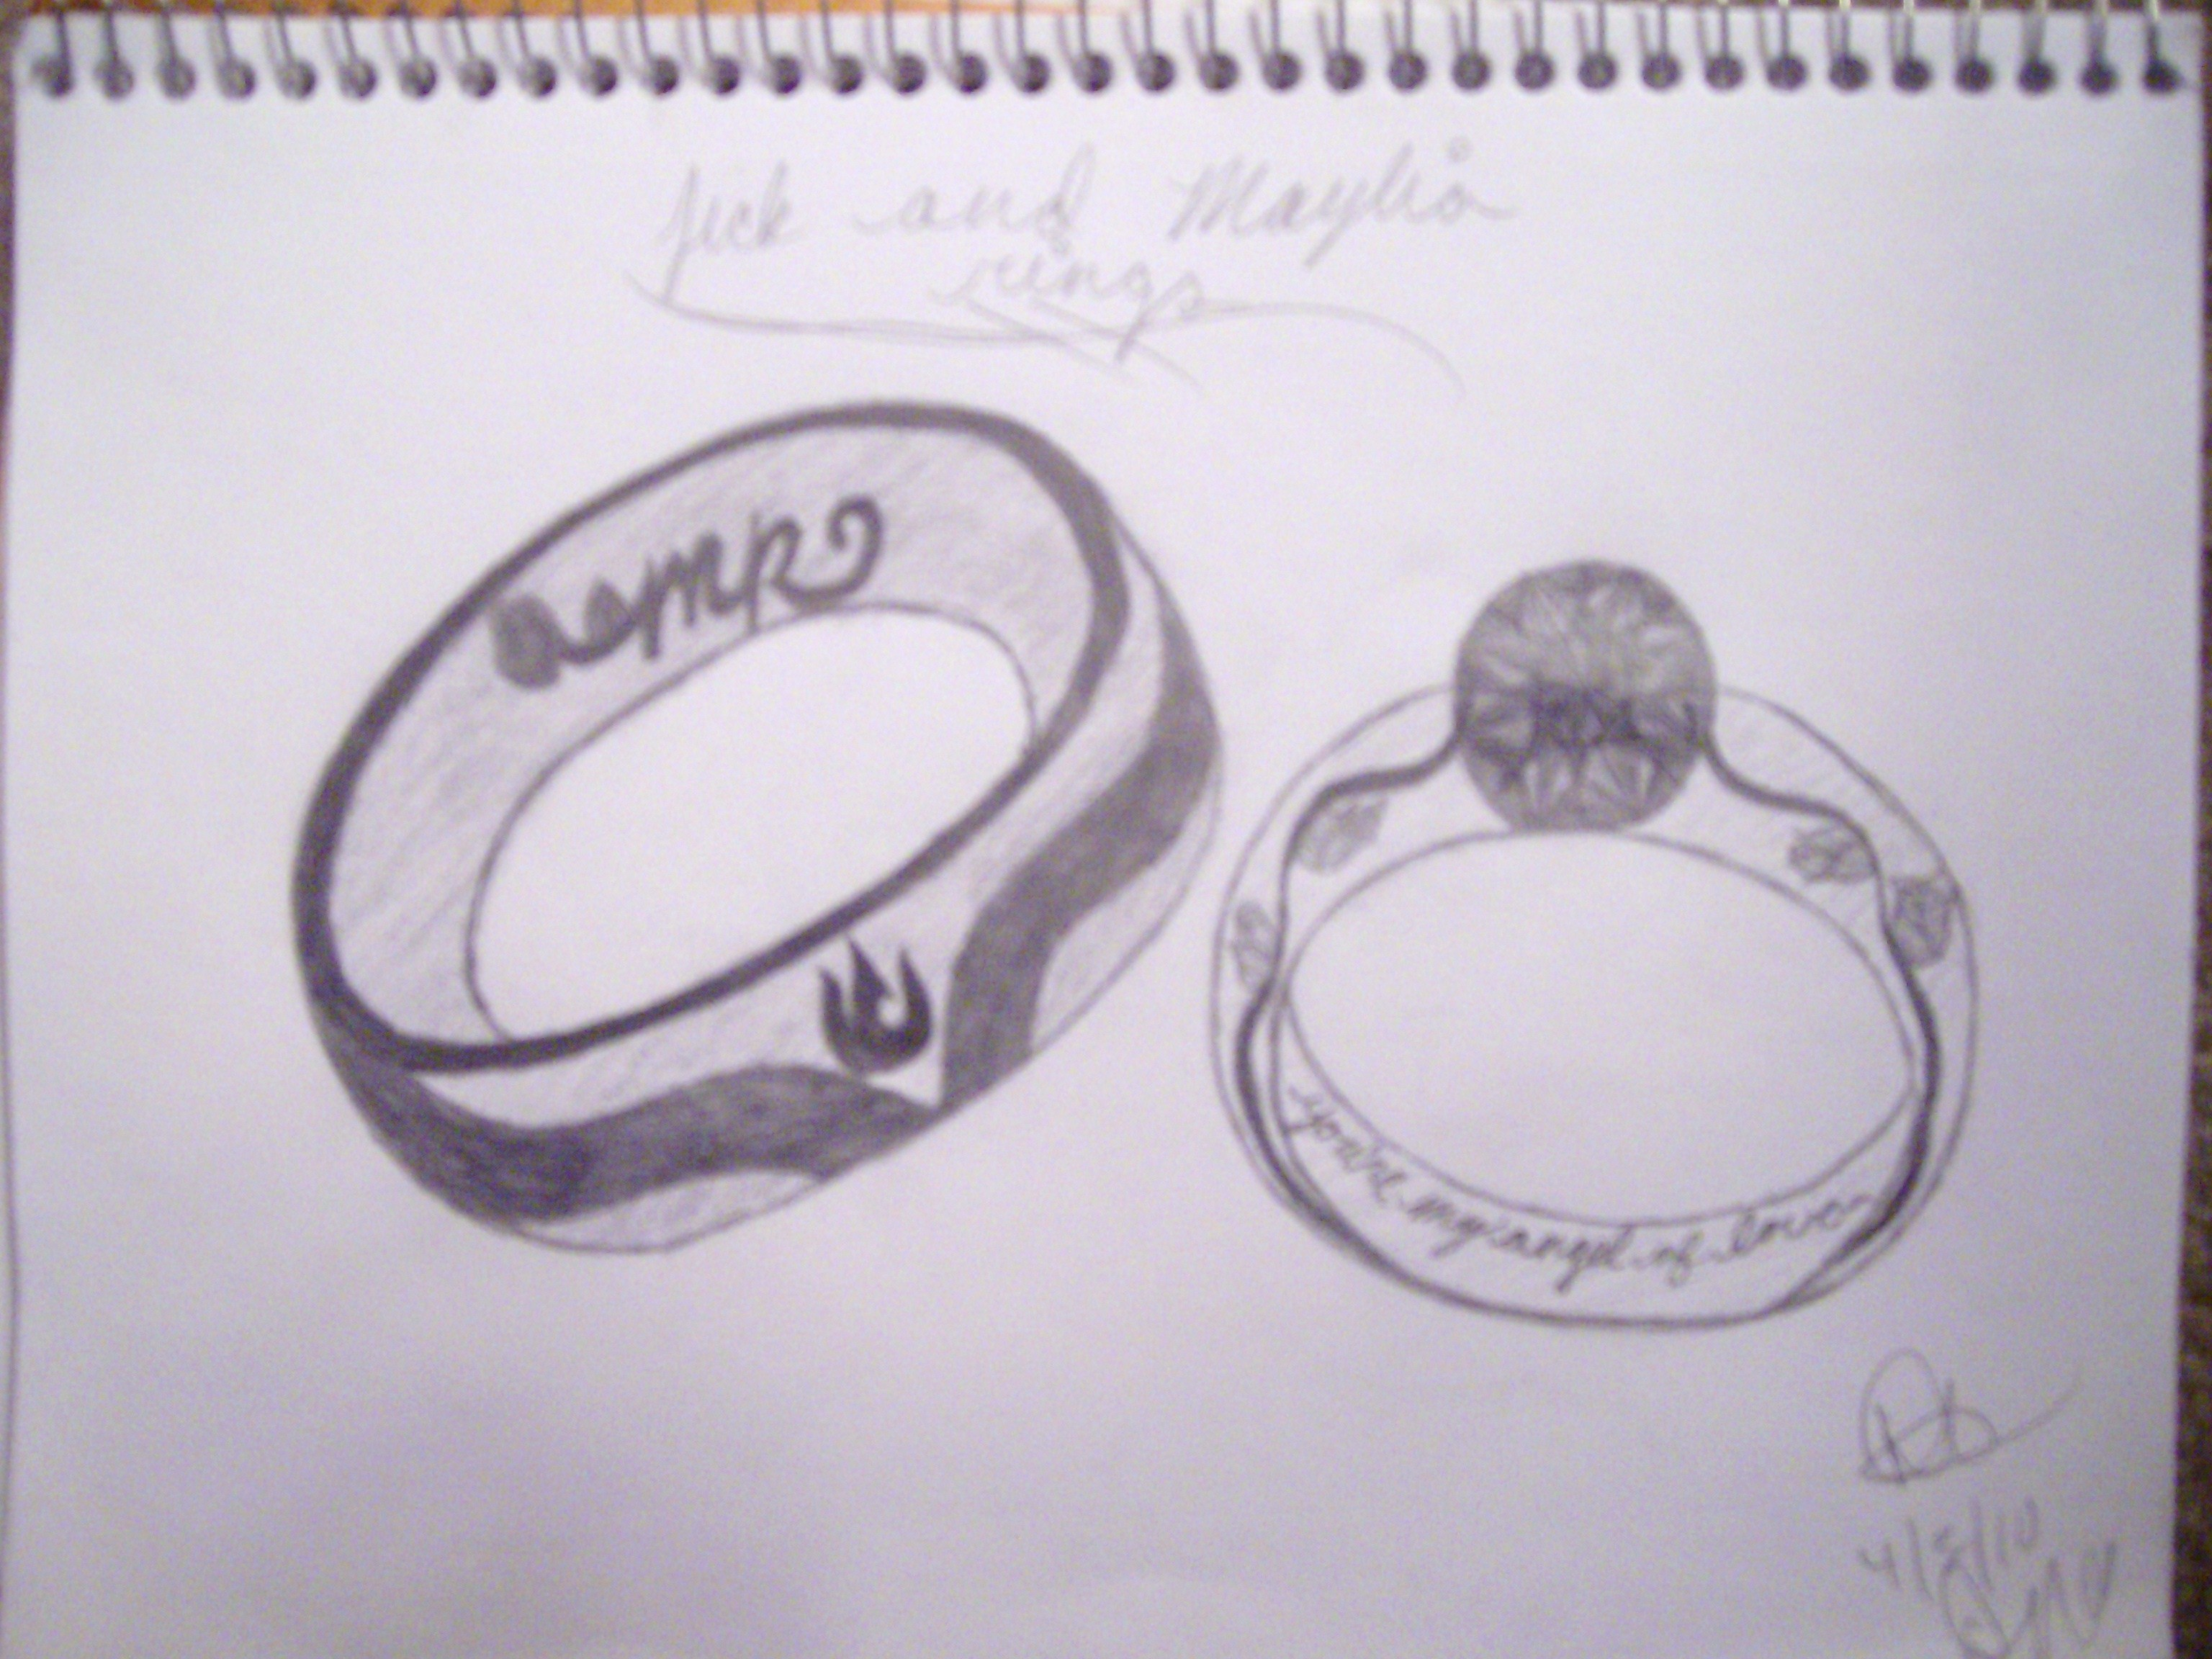 Jick and Maylias Wedding Rings by light-yagami5644